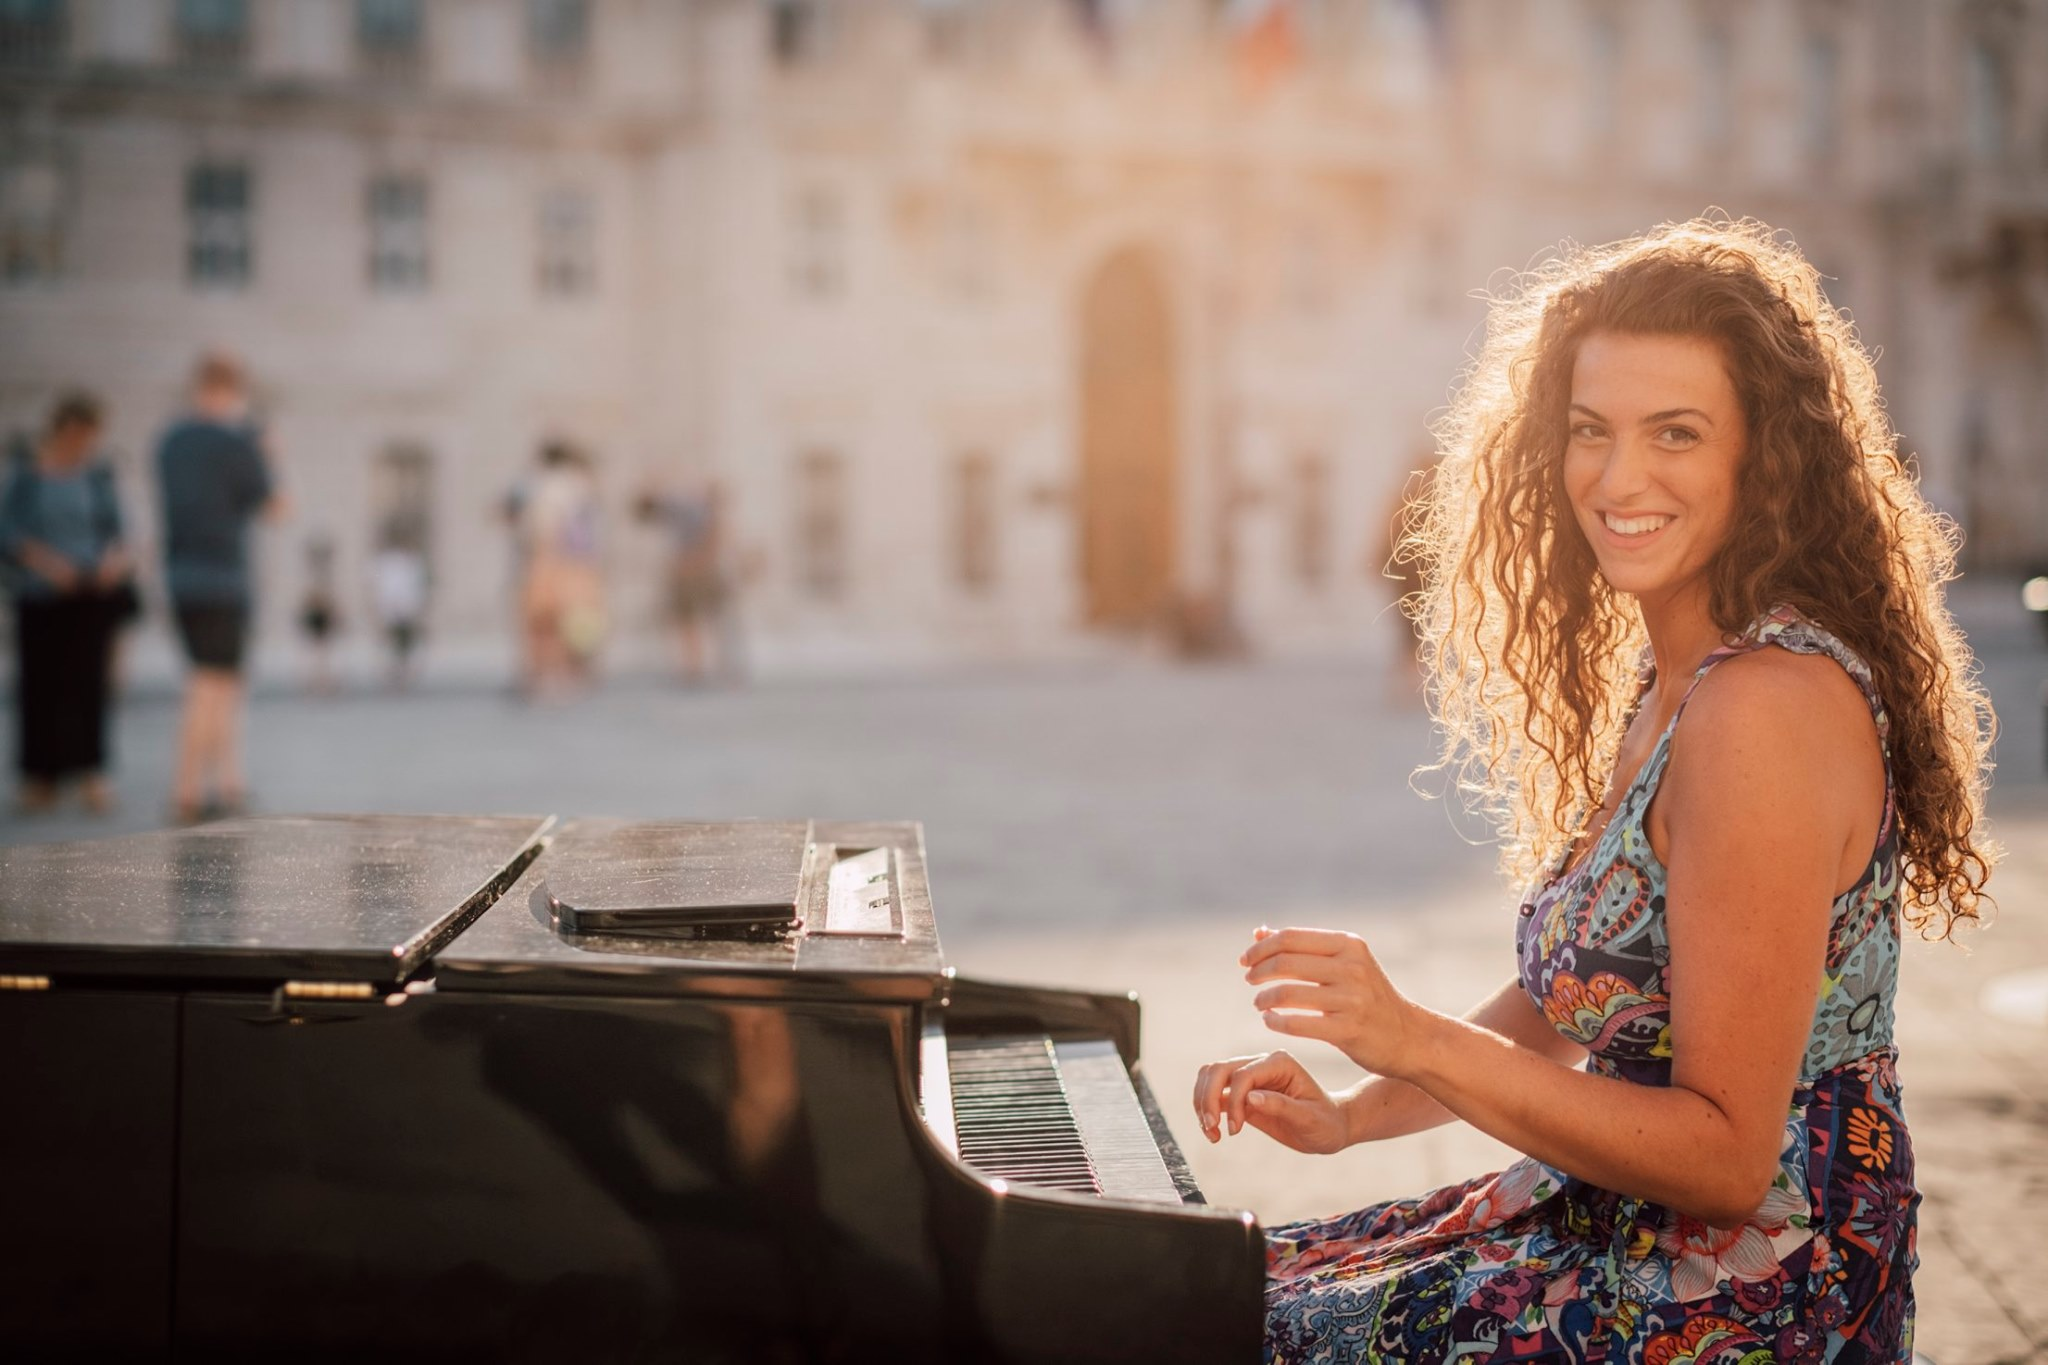 PIANO CITY TRIESTE